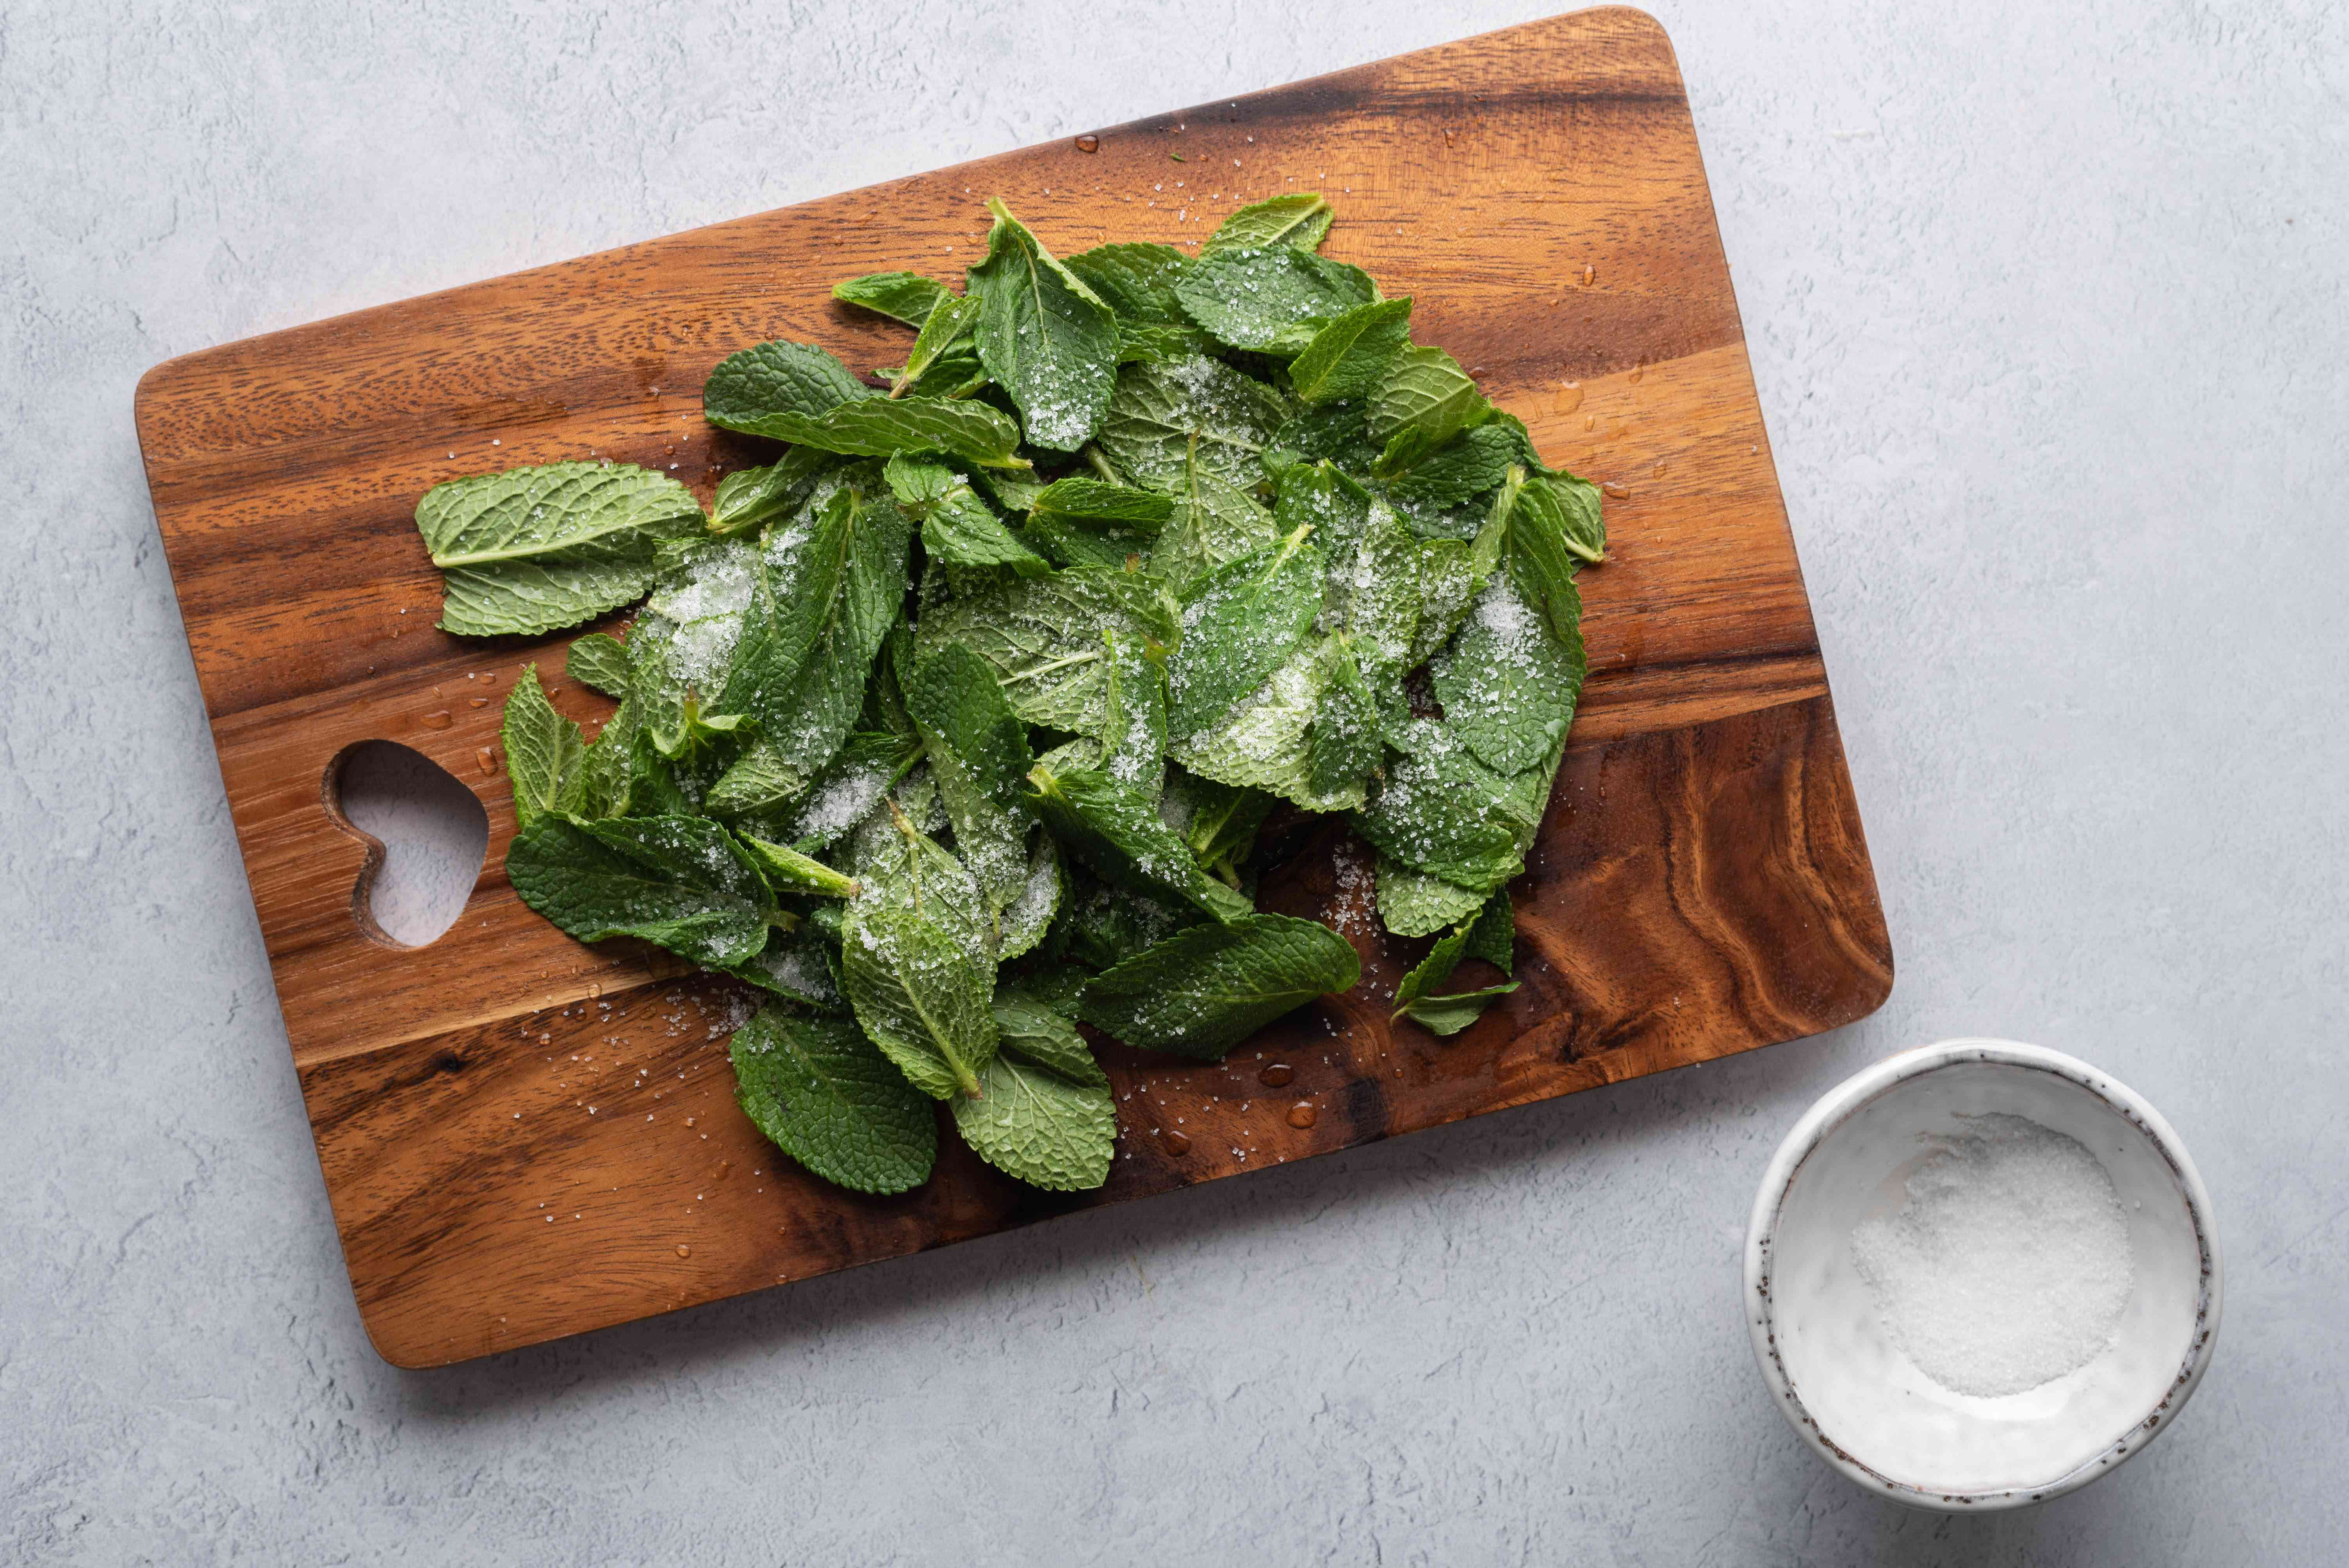 mint leaves sprinkled with sugar, on a wood cutting board